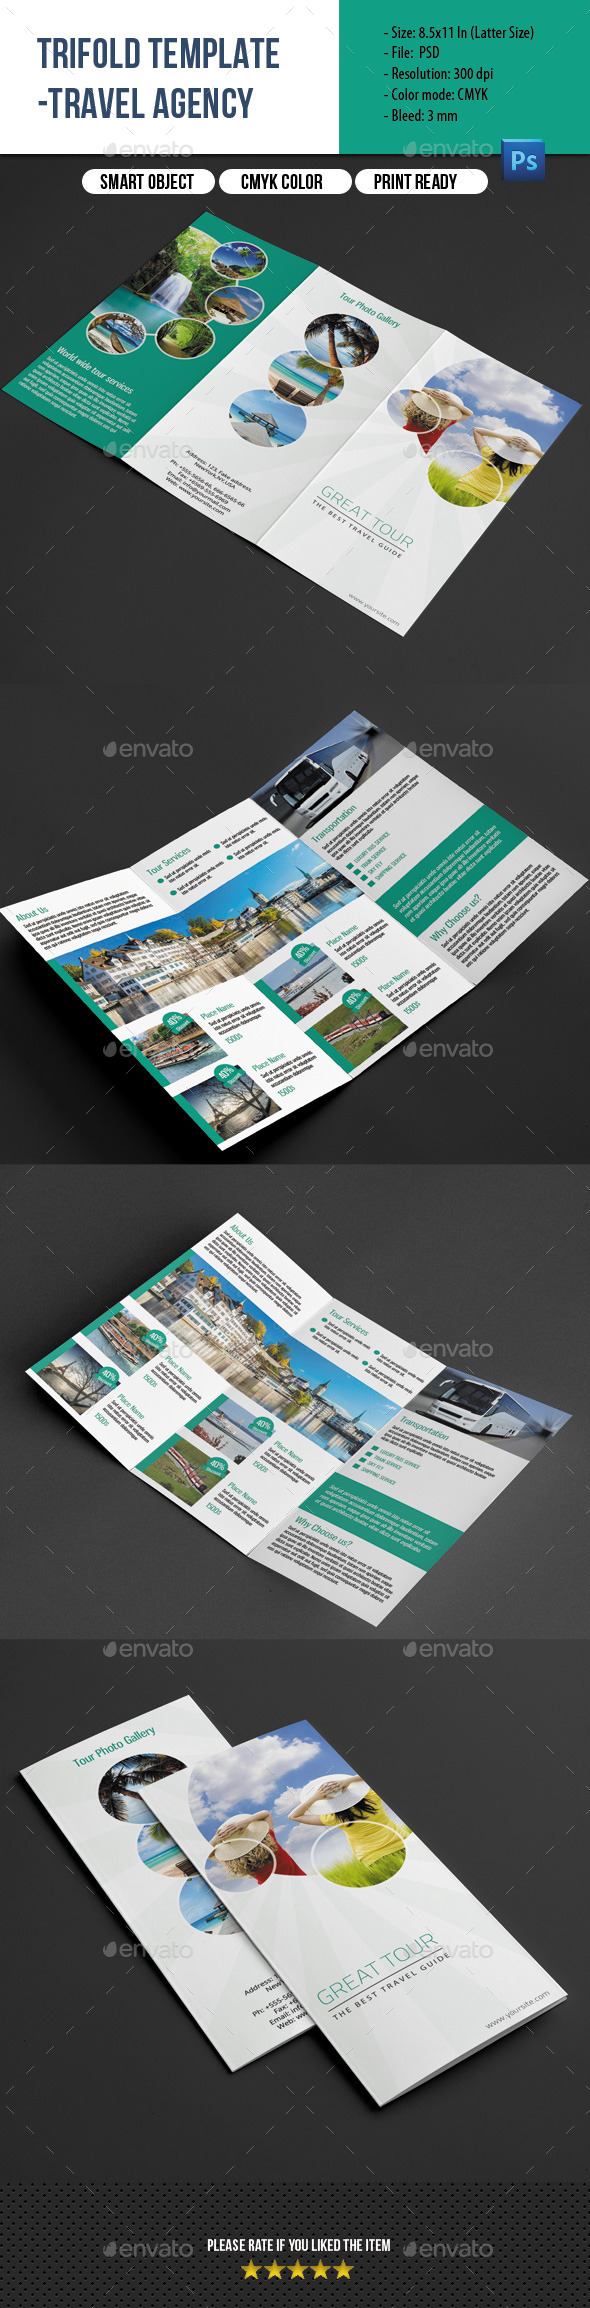 Travel Agency Trifold Brochure - Corporate Brochures